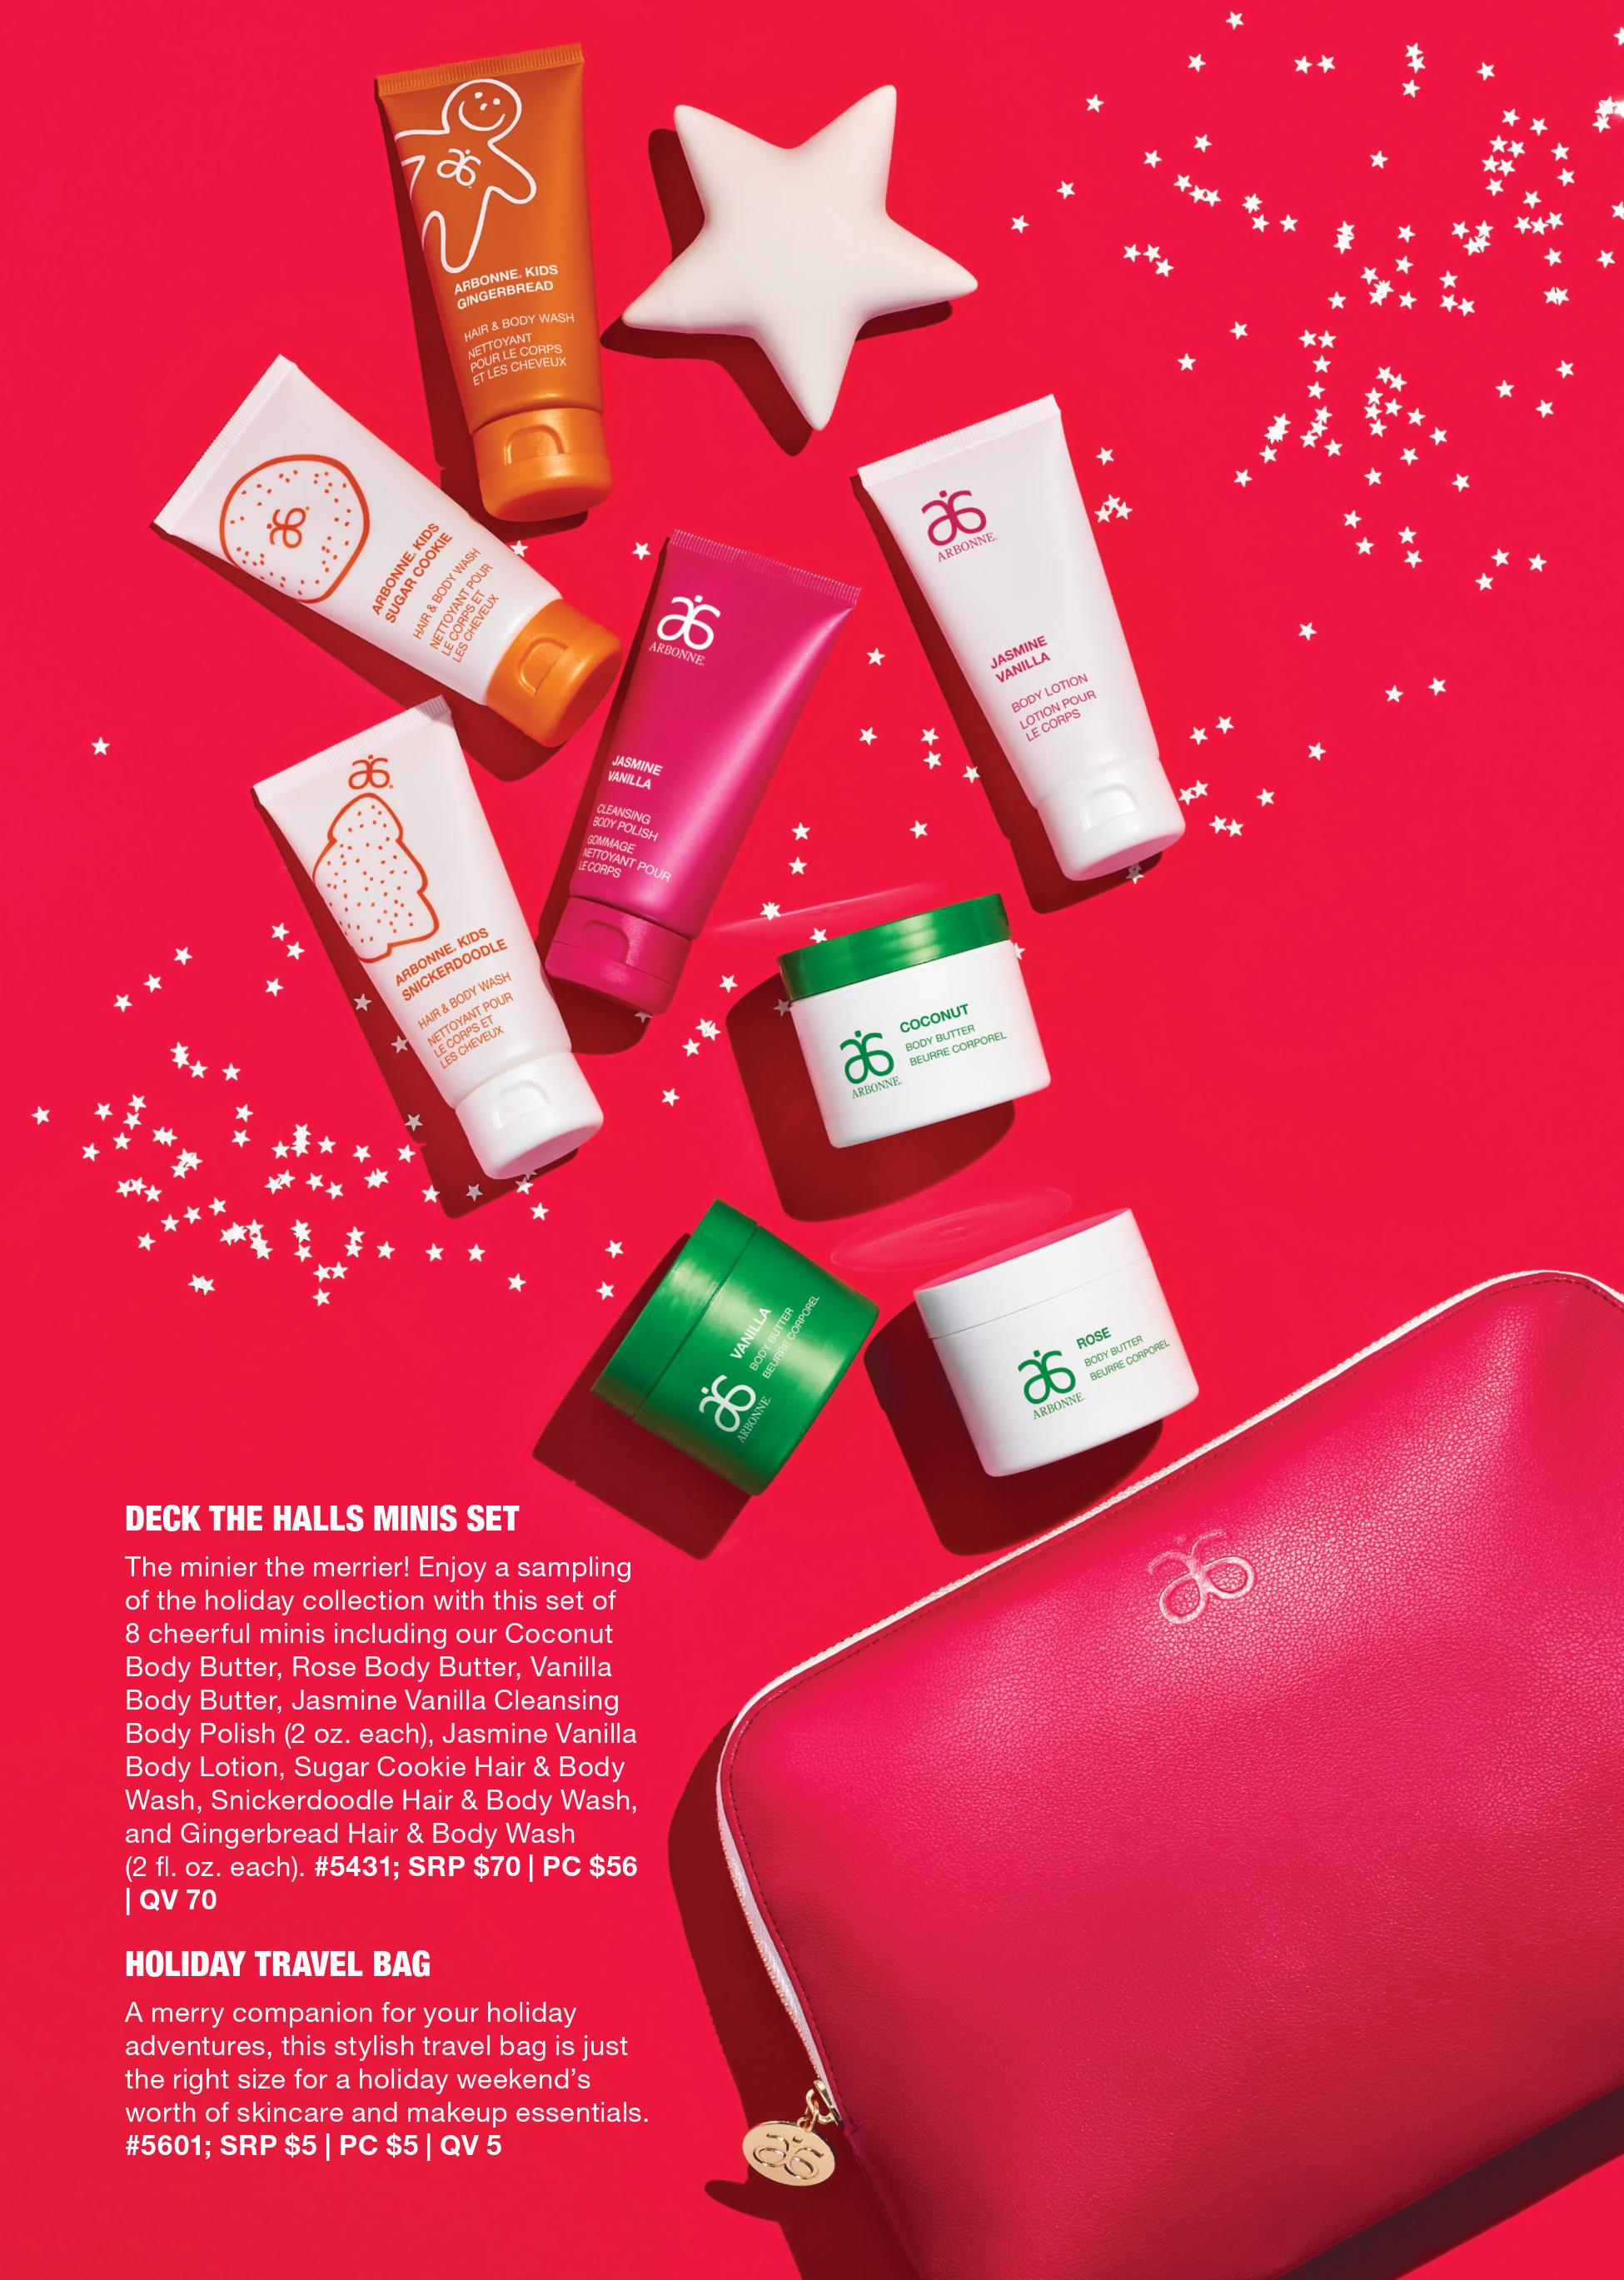 arbonne deck the halls mini set